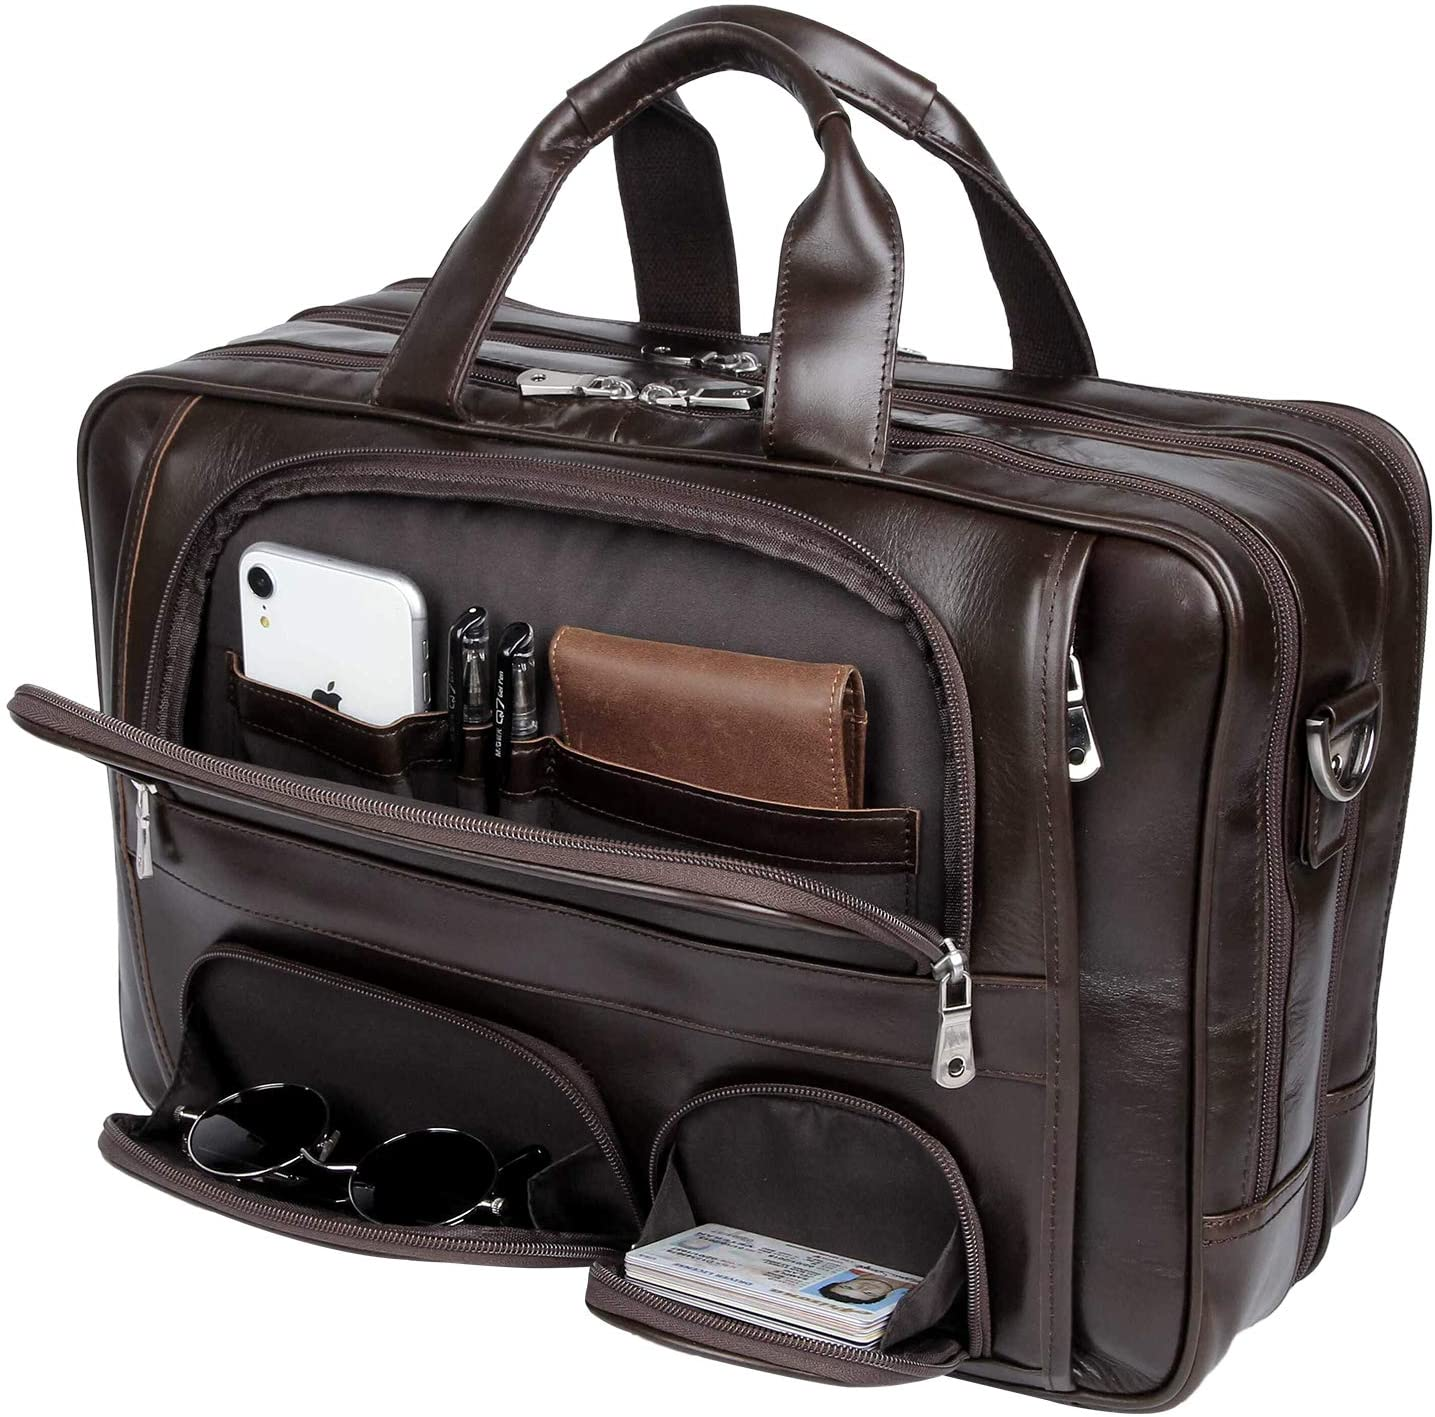 Texbo Napa Leather Briefcase for Men Fits 17 Laptop Large Business Messenger Bag with YKK Zippers